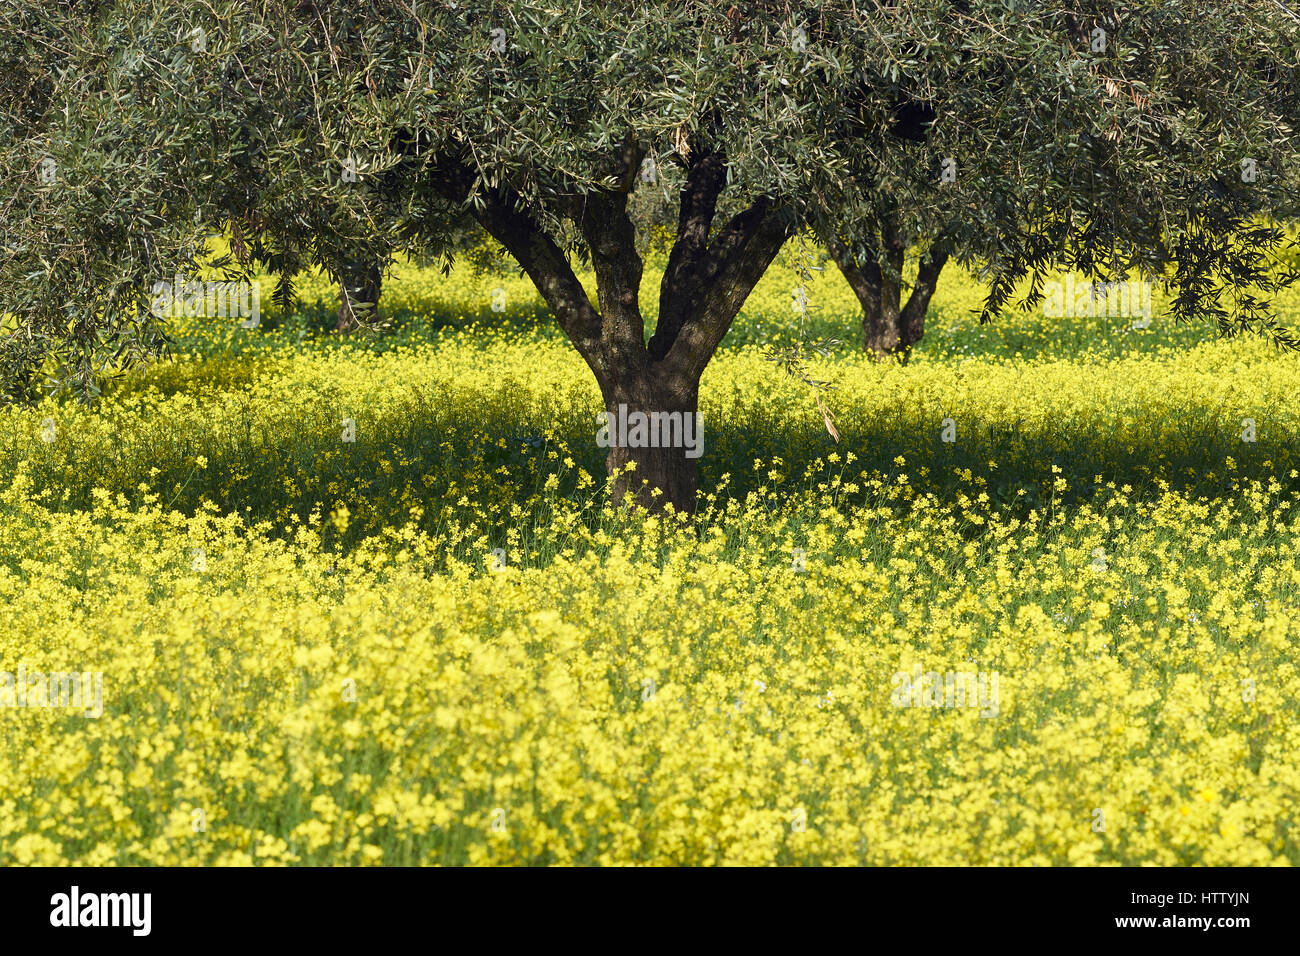 Olive Trees Yellow Flowers Stock Photos Olive Trees Yellow Flowers